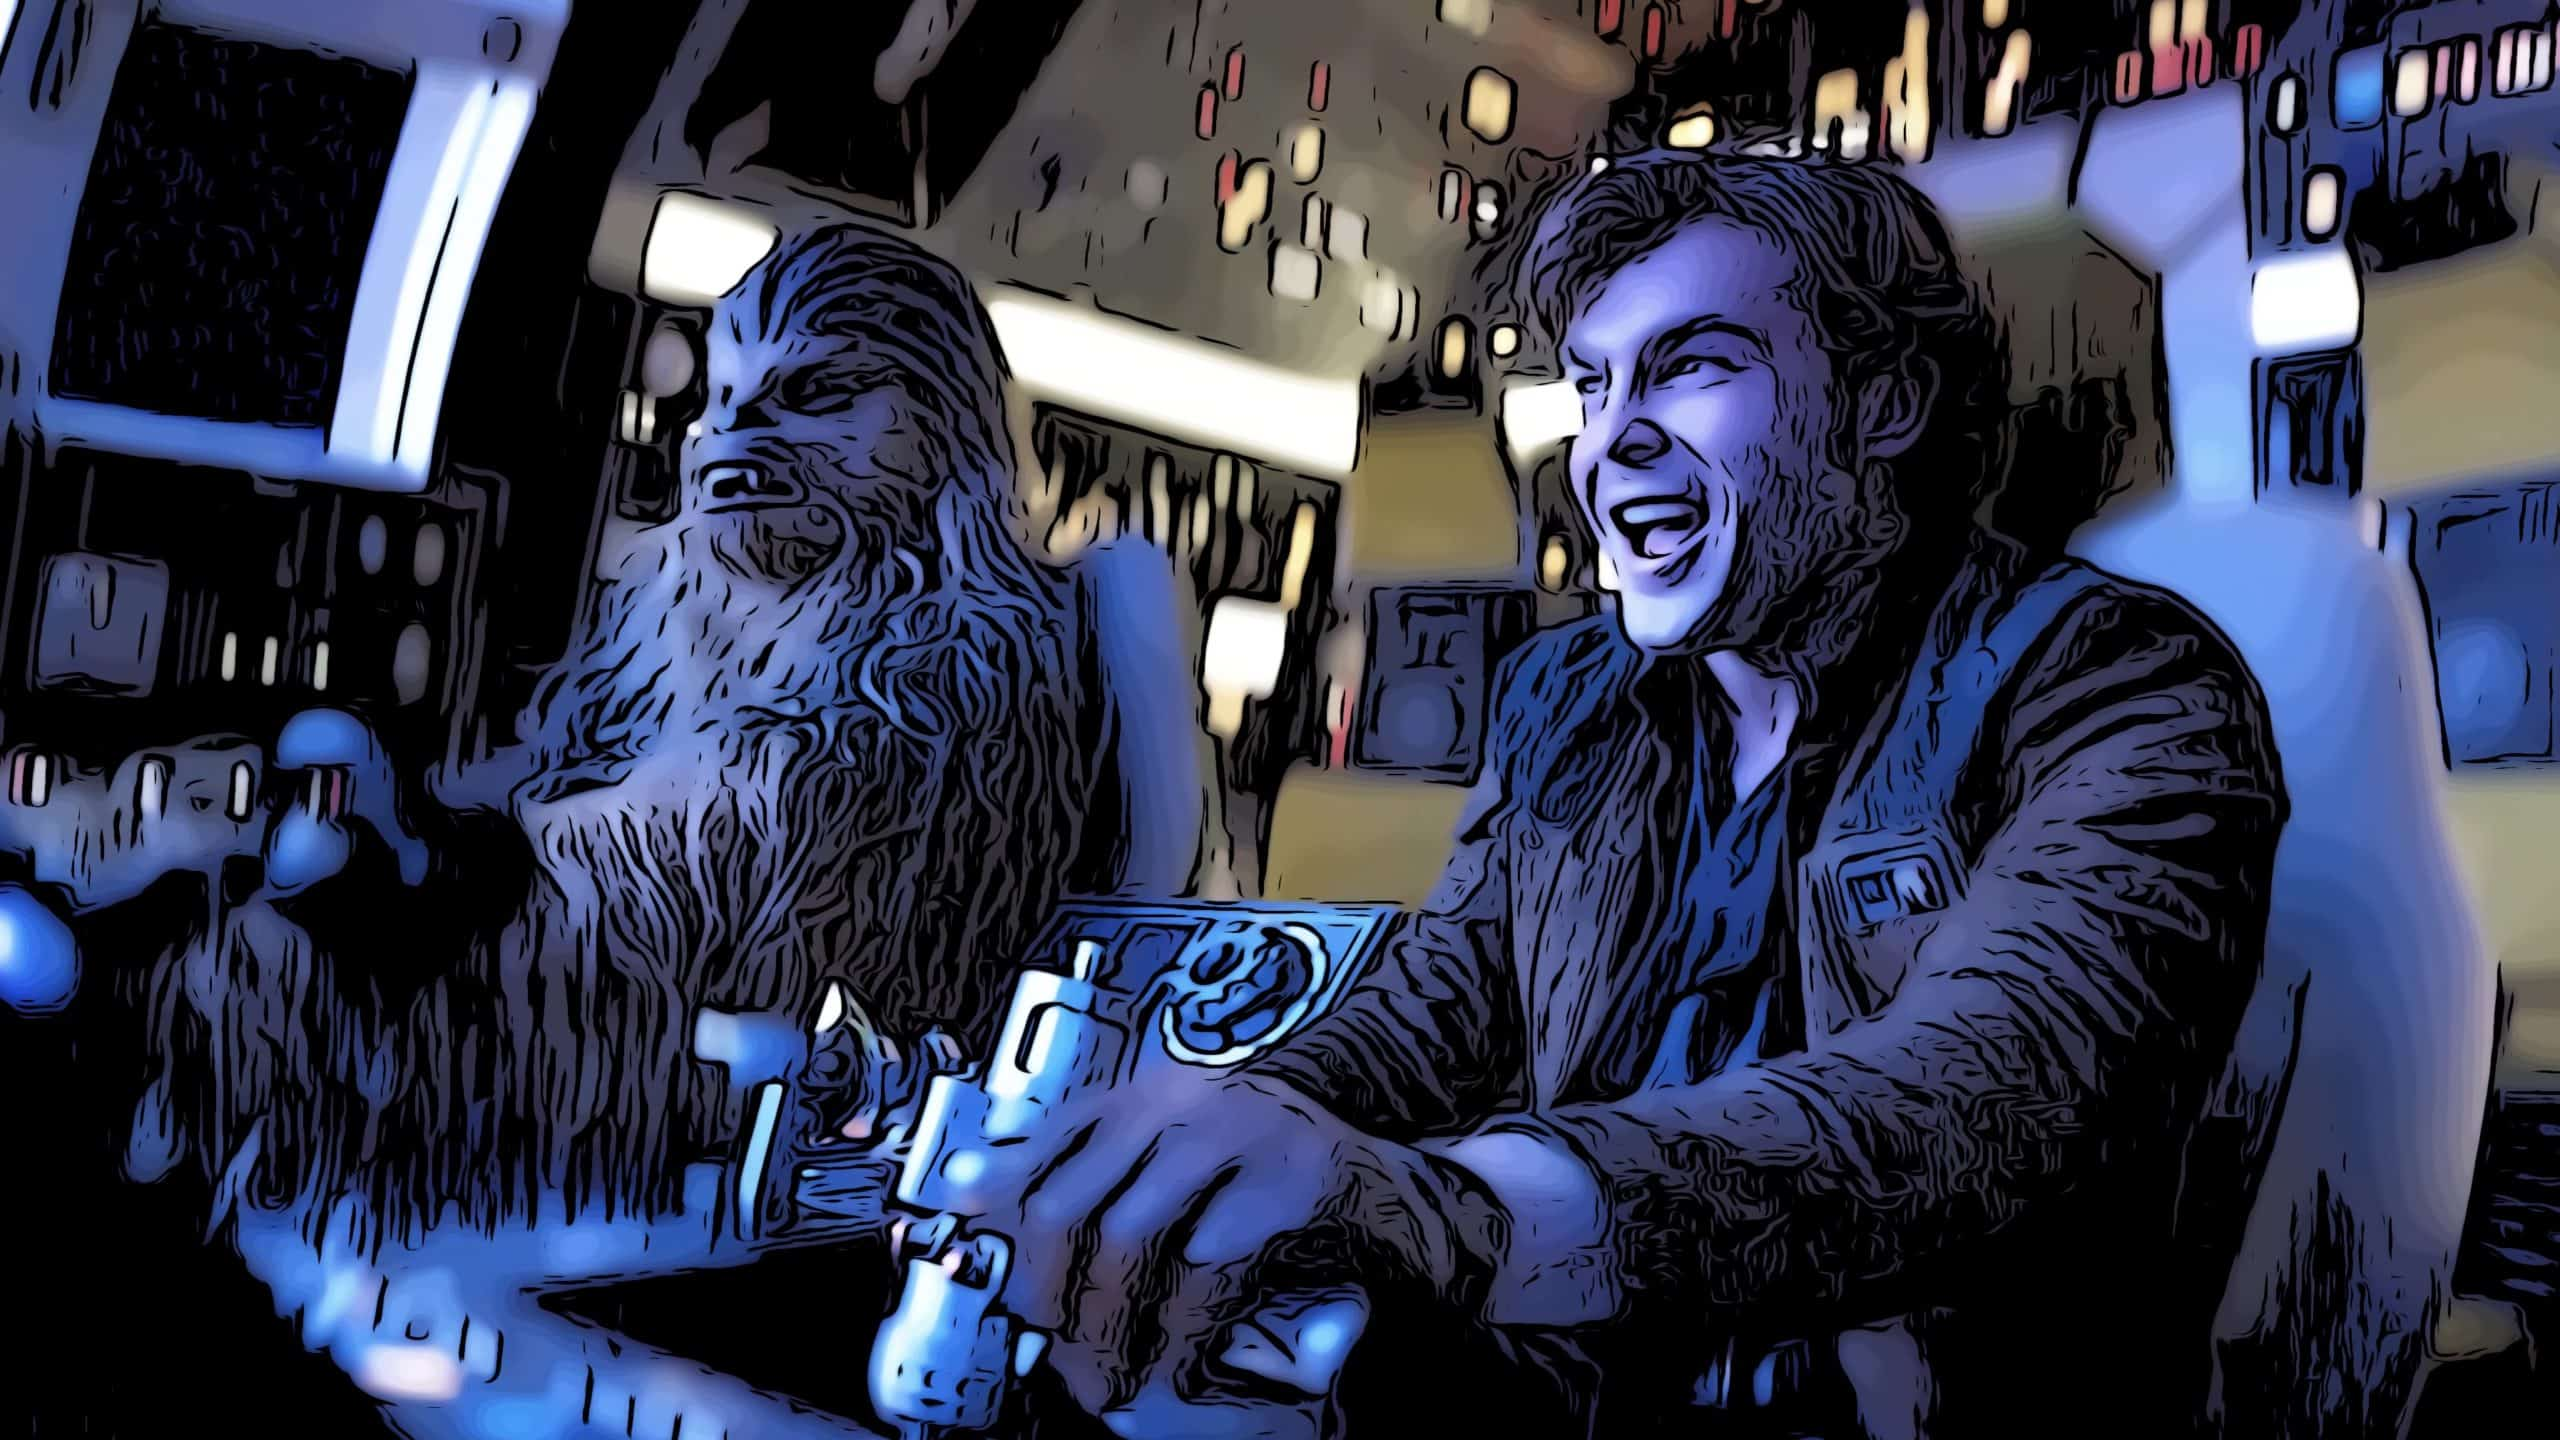 Scene from Solo: A Star Wars Story for adventure movies on Netflix post.